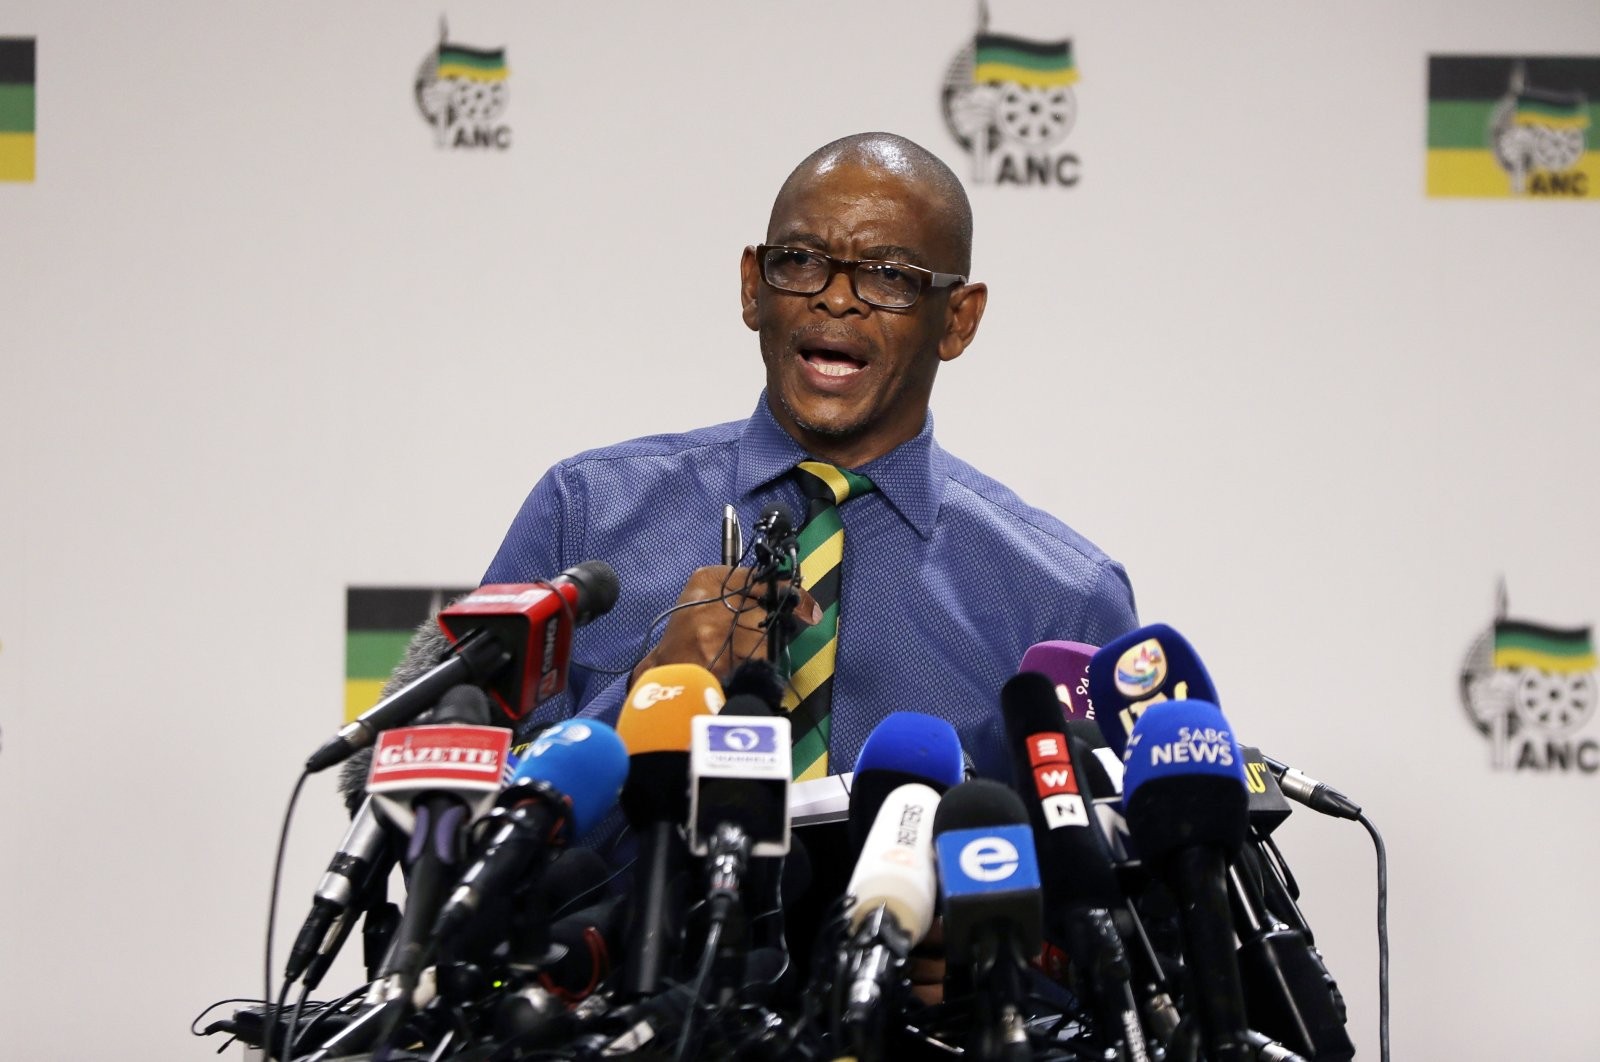 Secretary-general of the ruling African National Congress, (ANC) Ace Magashule, speaks at a briefing at the ANC headquarters in Johannesburg, Feb. 13, 2018. (AP Photo)